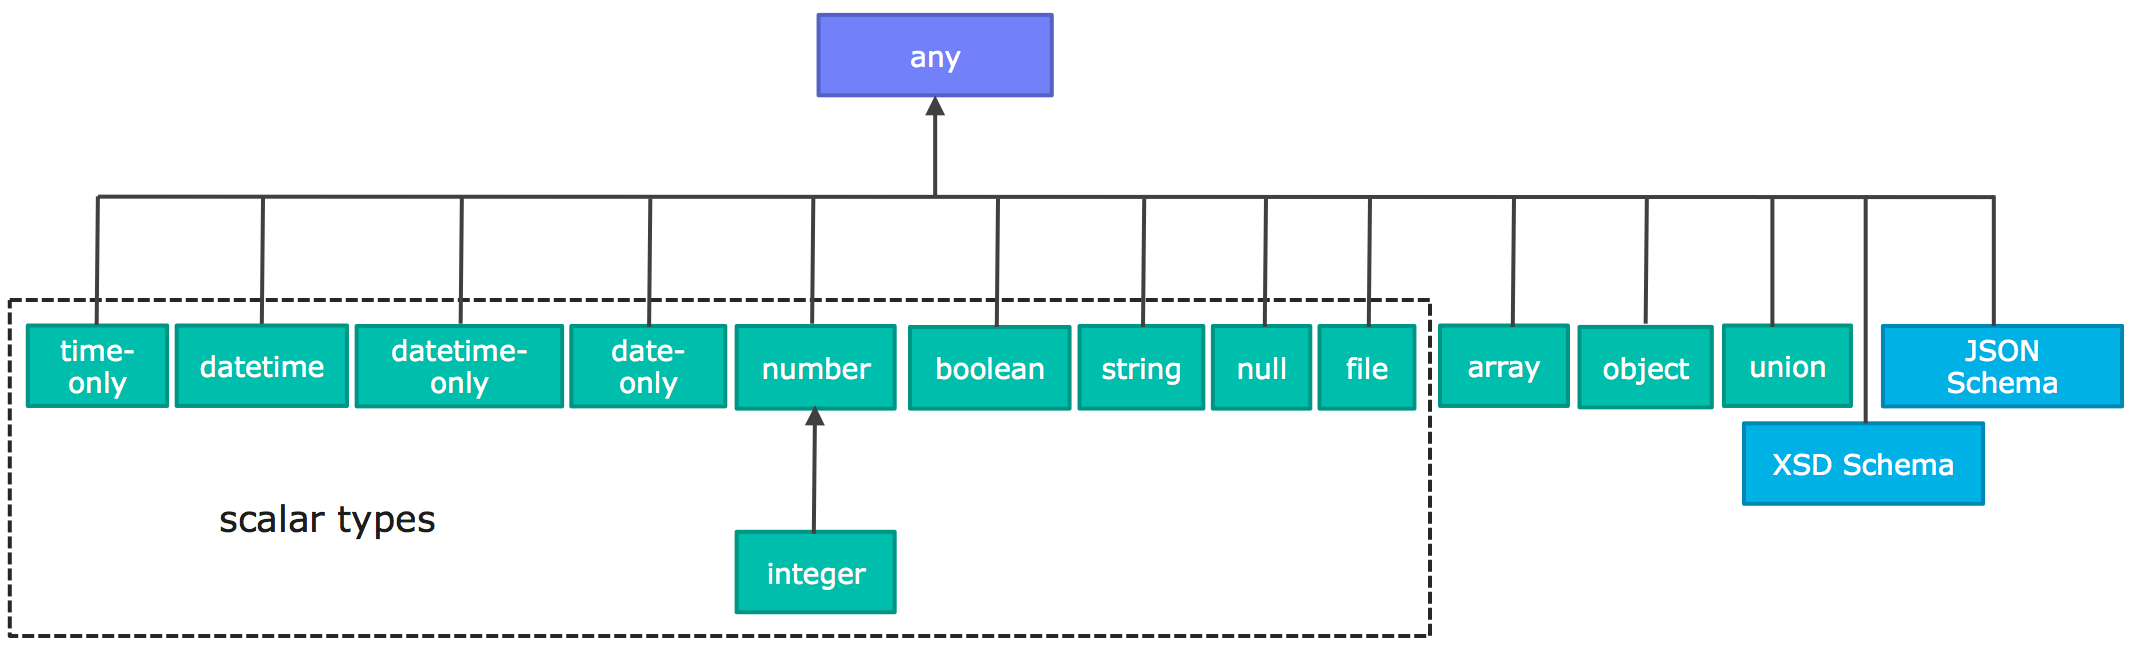 Types Hierarchy